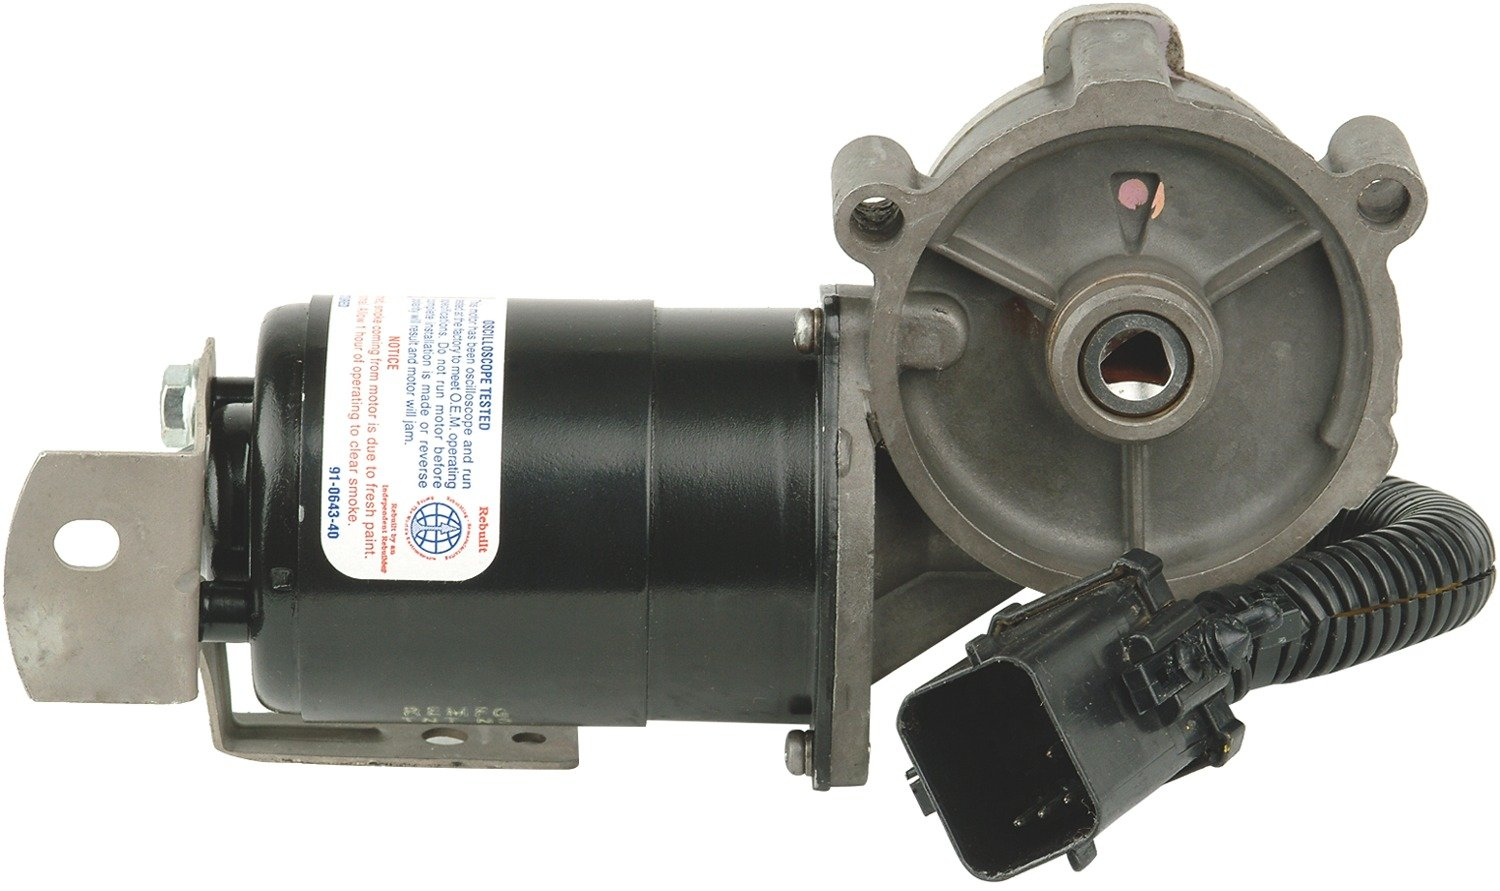 Cardone 48-204 Remanufactured Transfer Case Motor